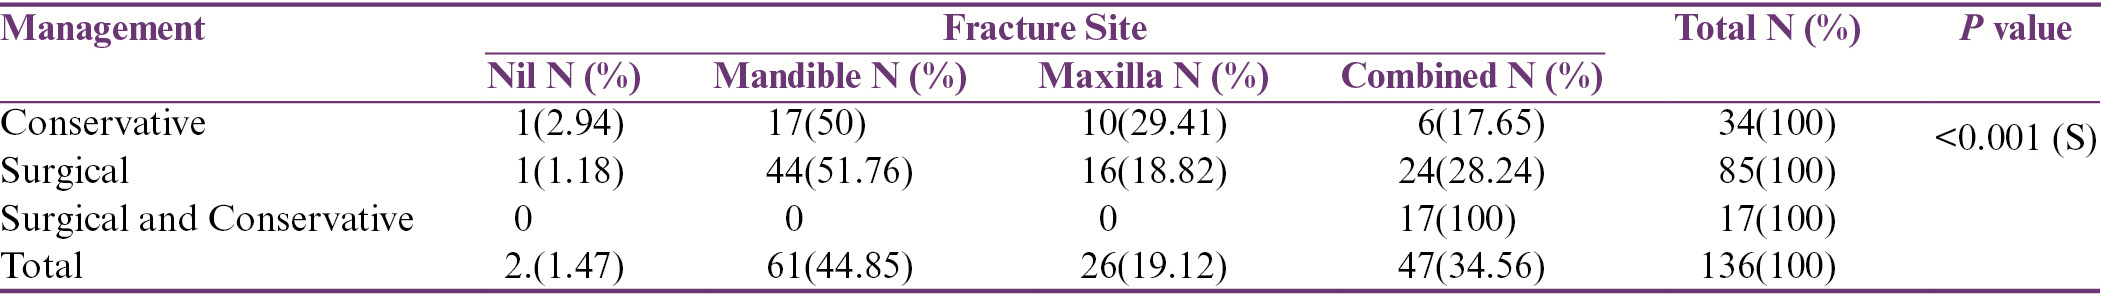 Table 4: Association between site of fracture and treatment